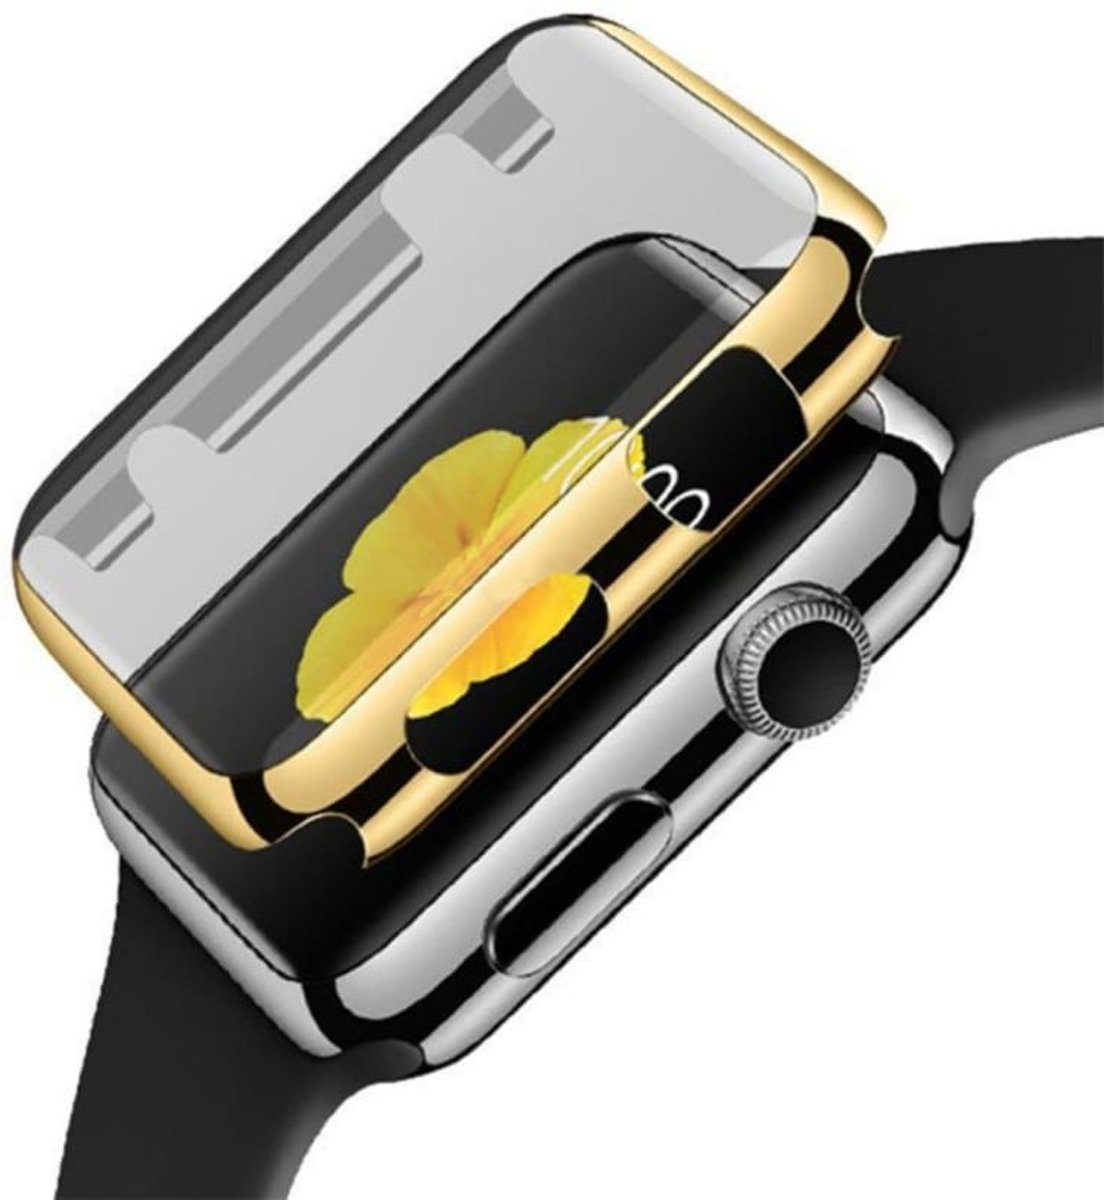 38mm Case Cover Screen Protector goud 4H Protected Knocks Watch Cases voor Apple watch 3 Watchbands-shop.nl kopen